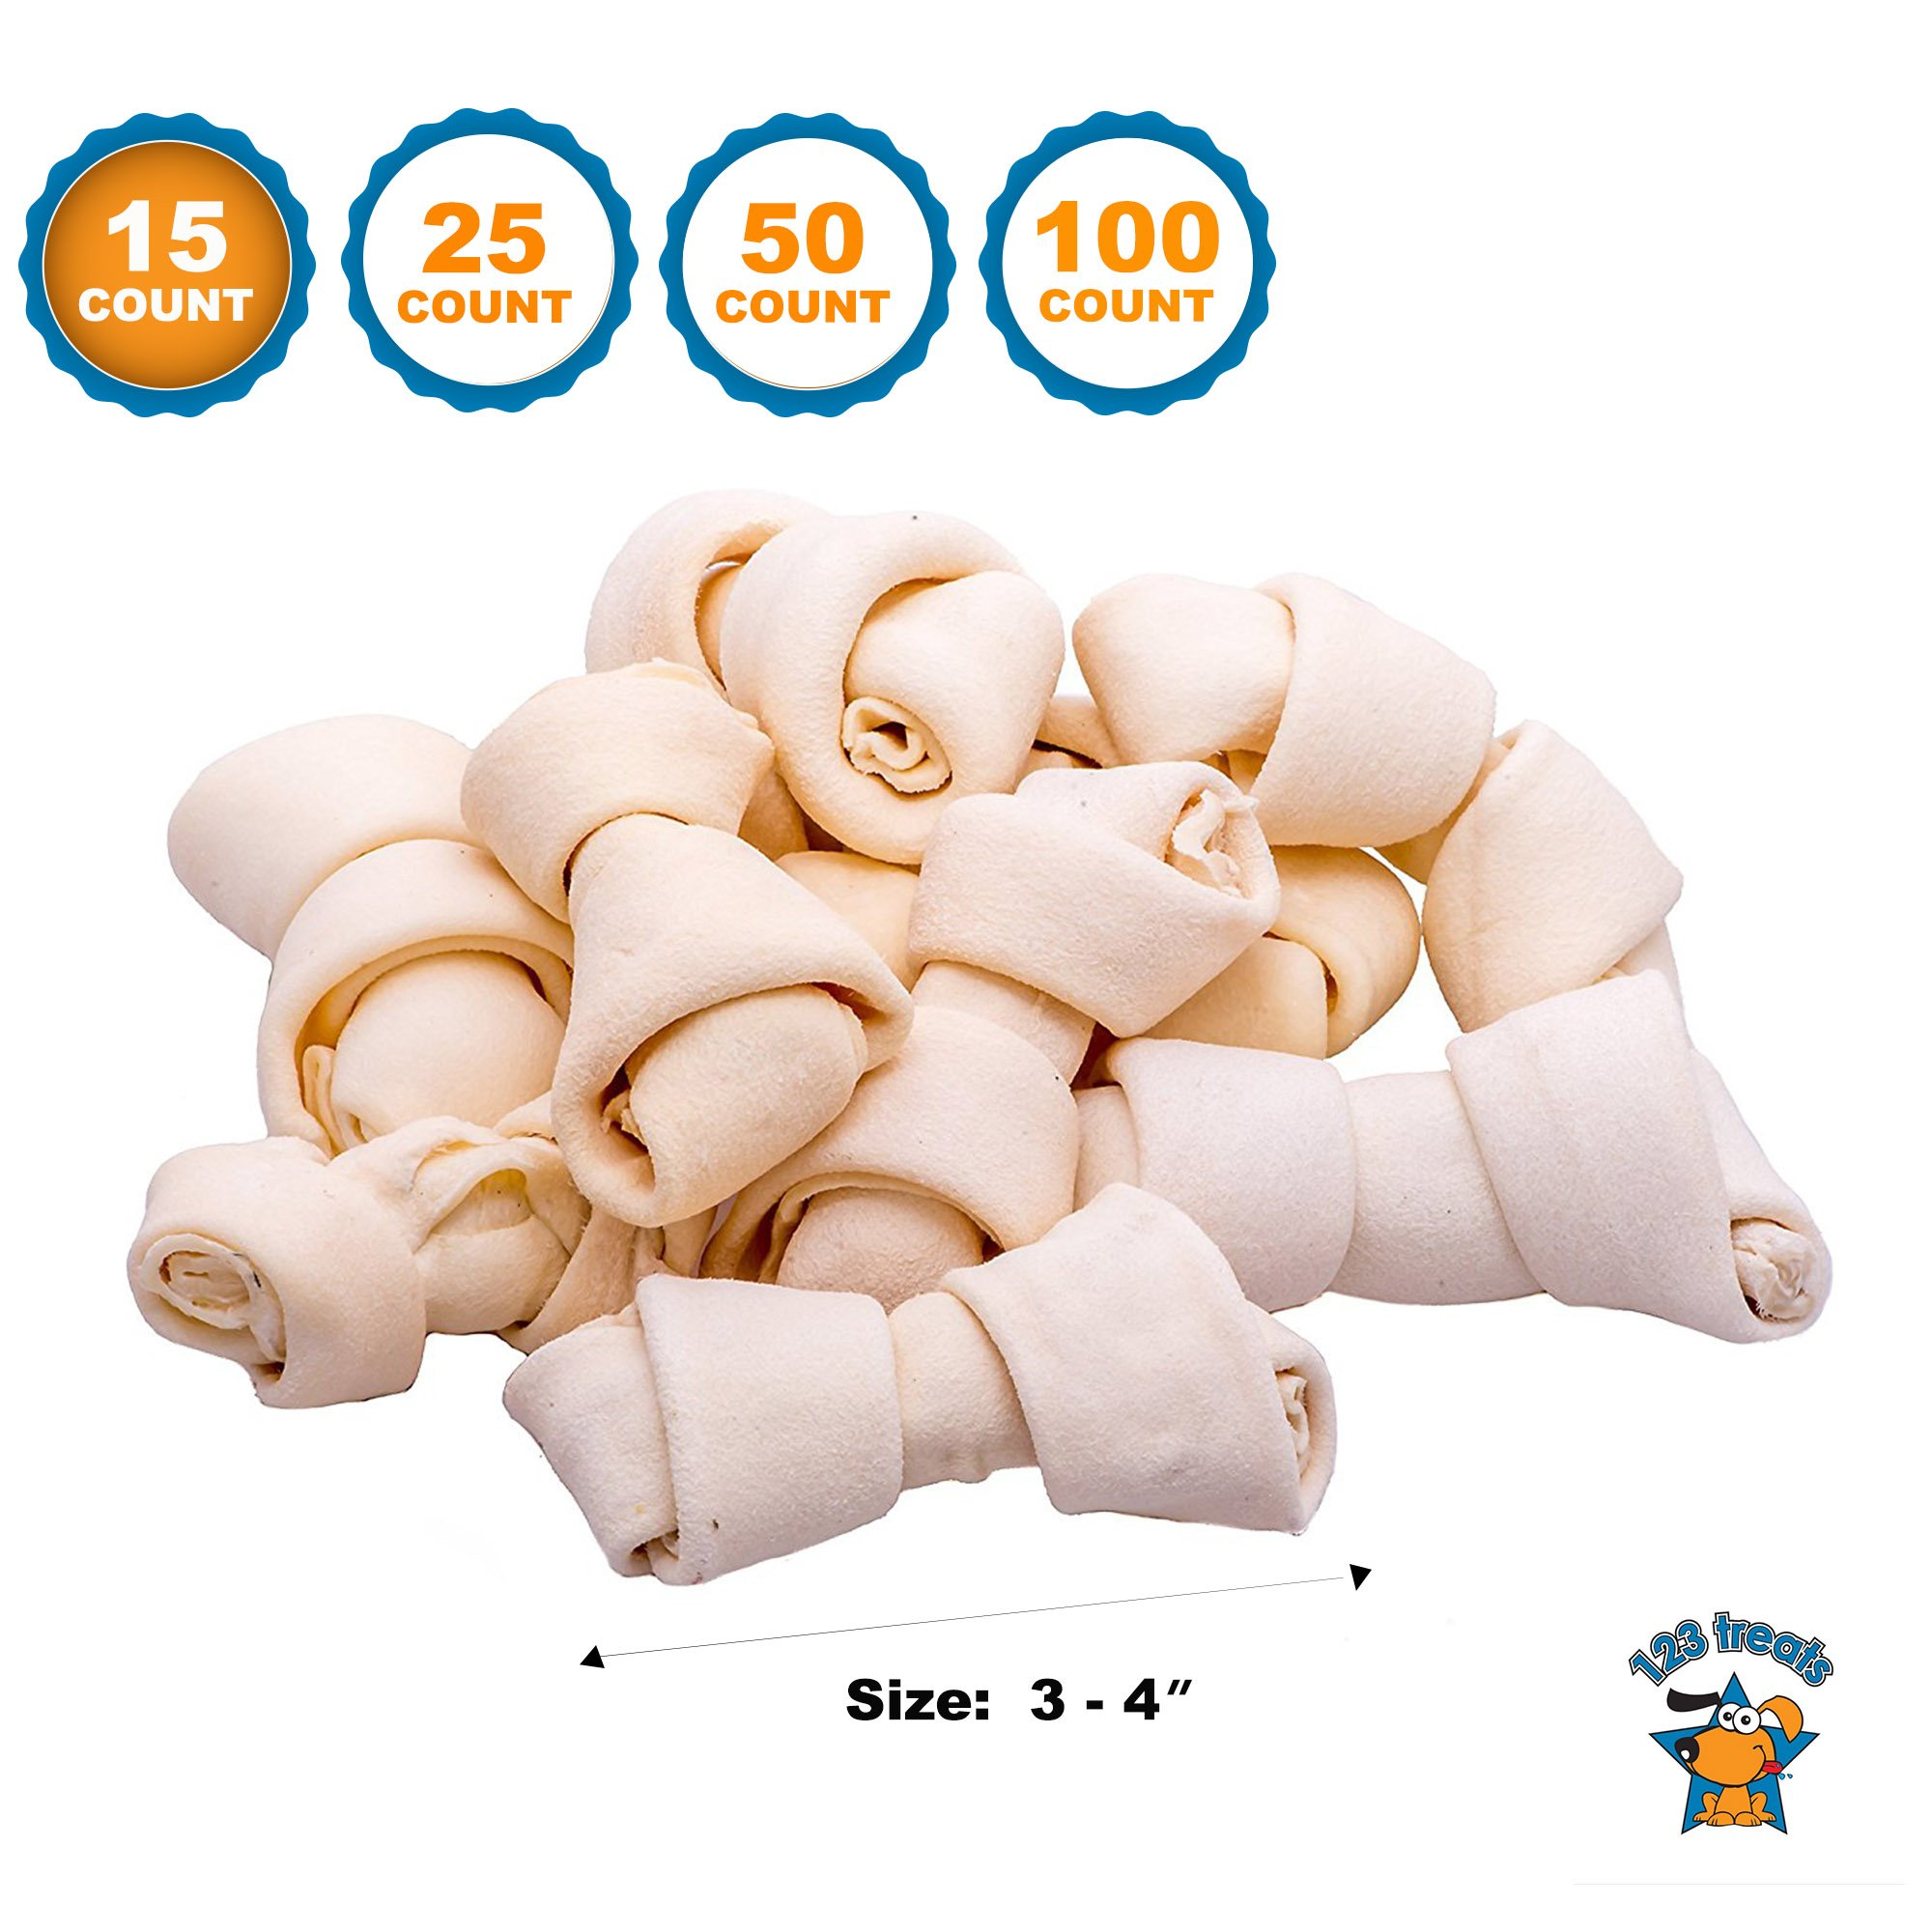 123 Treats - Rawhide Bones Chews 3-4'' (15 Count) Premium Rawhide Dog Bones   Free Range Grass Fed Cattle with No Hormones, Additives or Chemicals